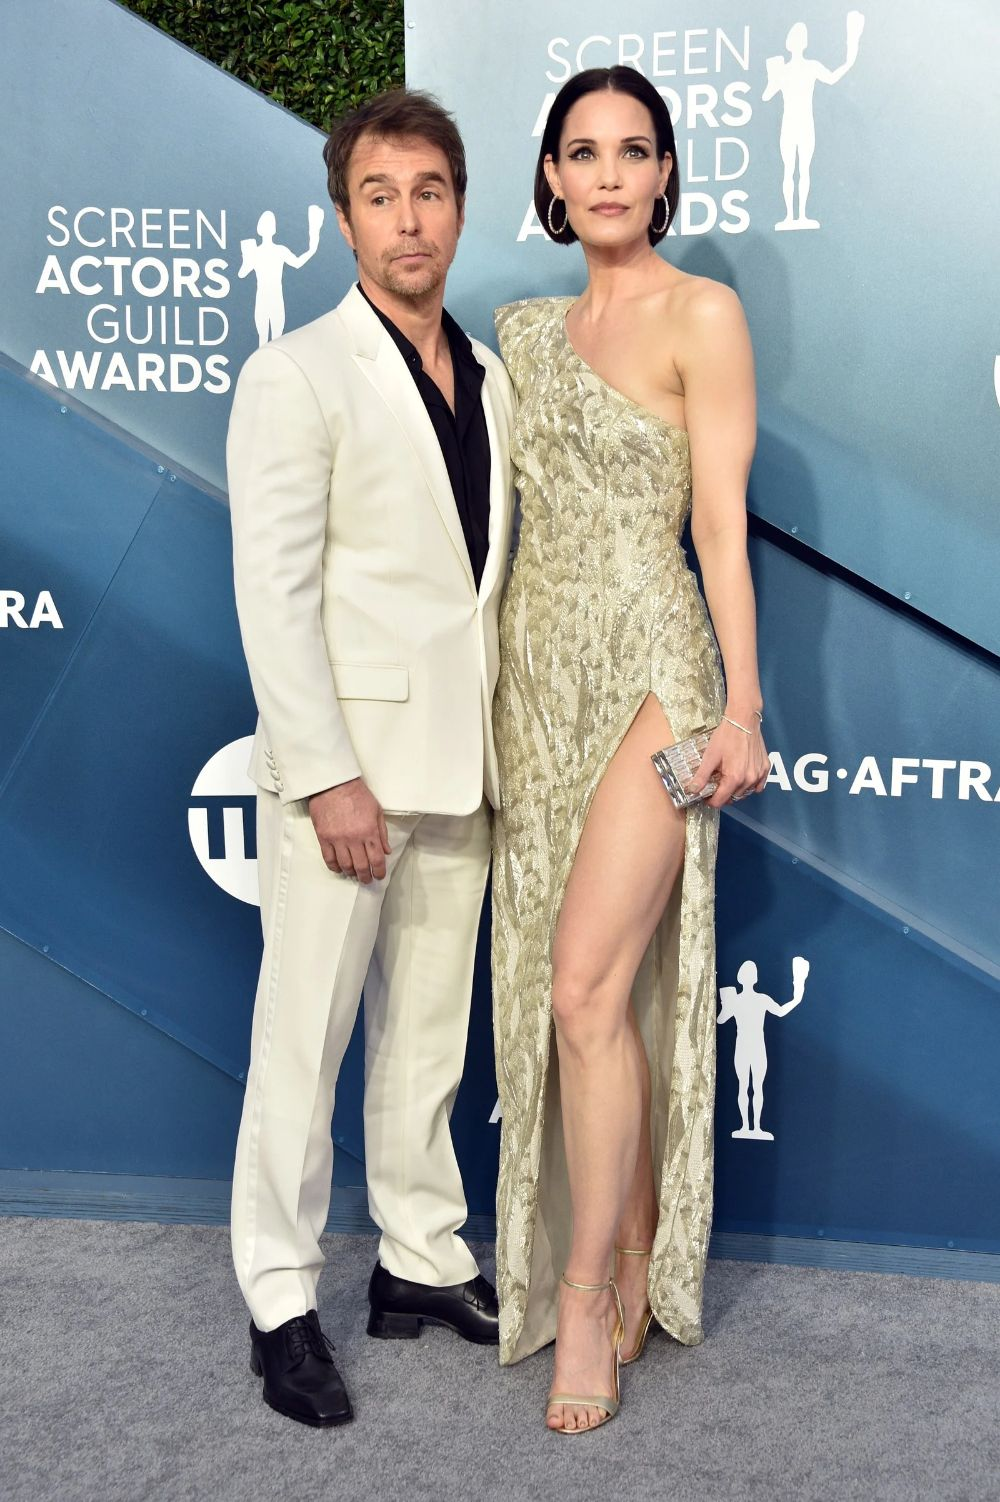 Judging by his Scarface suit, SAG winner Sam Rockwell already knew he was going to win.